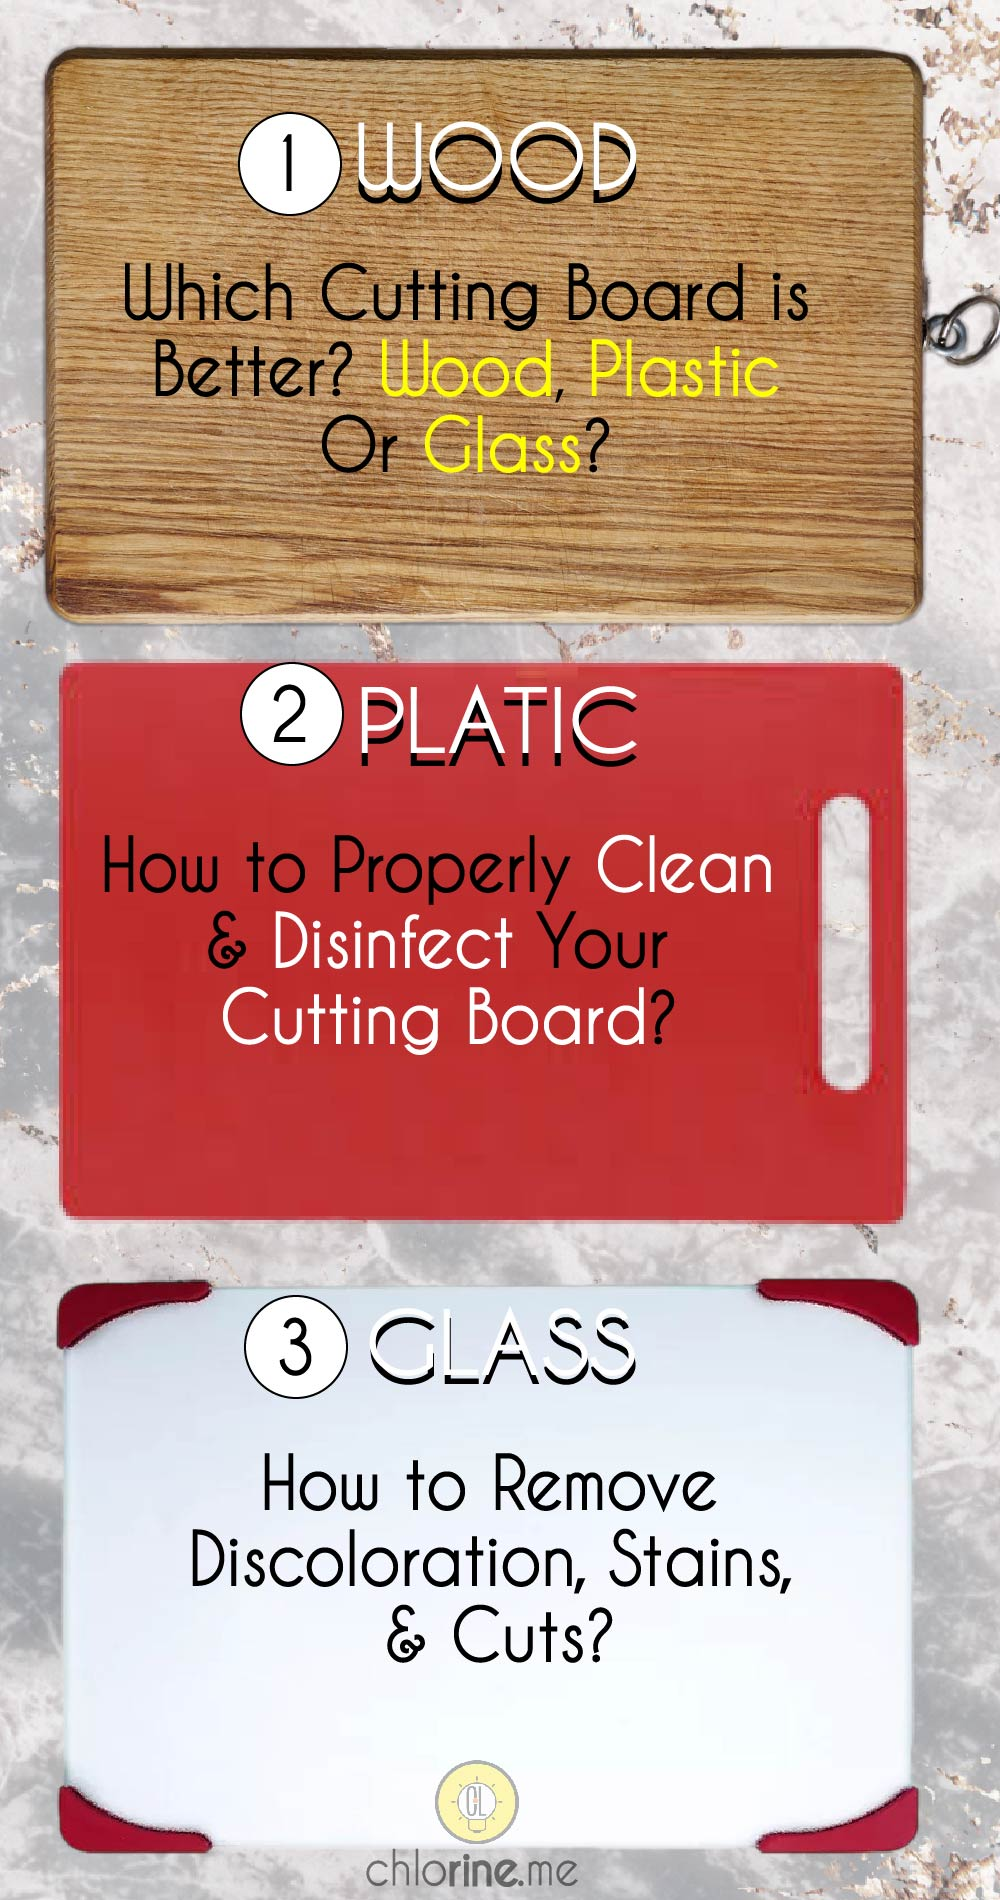 which cutting board is better, wood, plastic , or glass